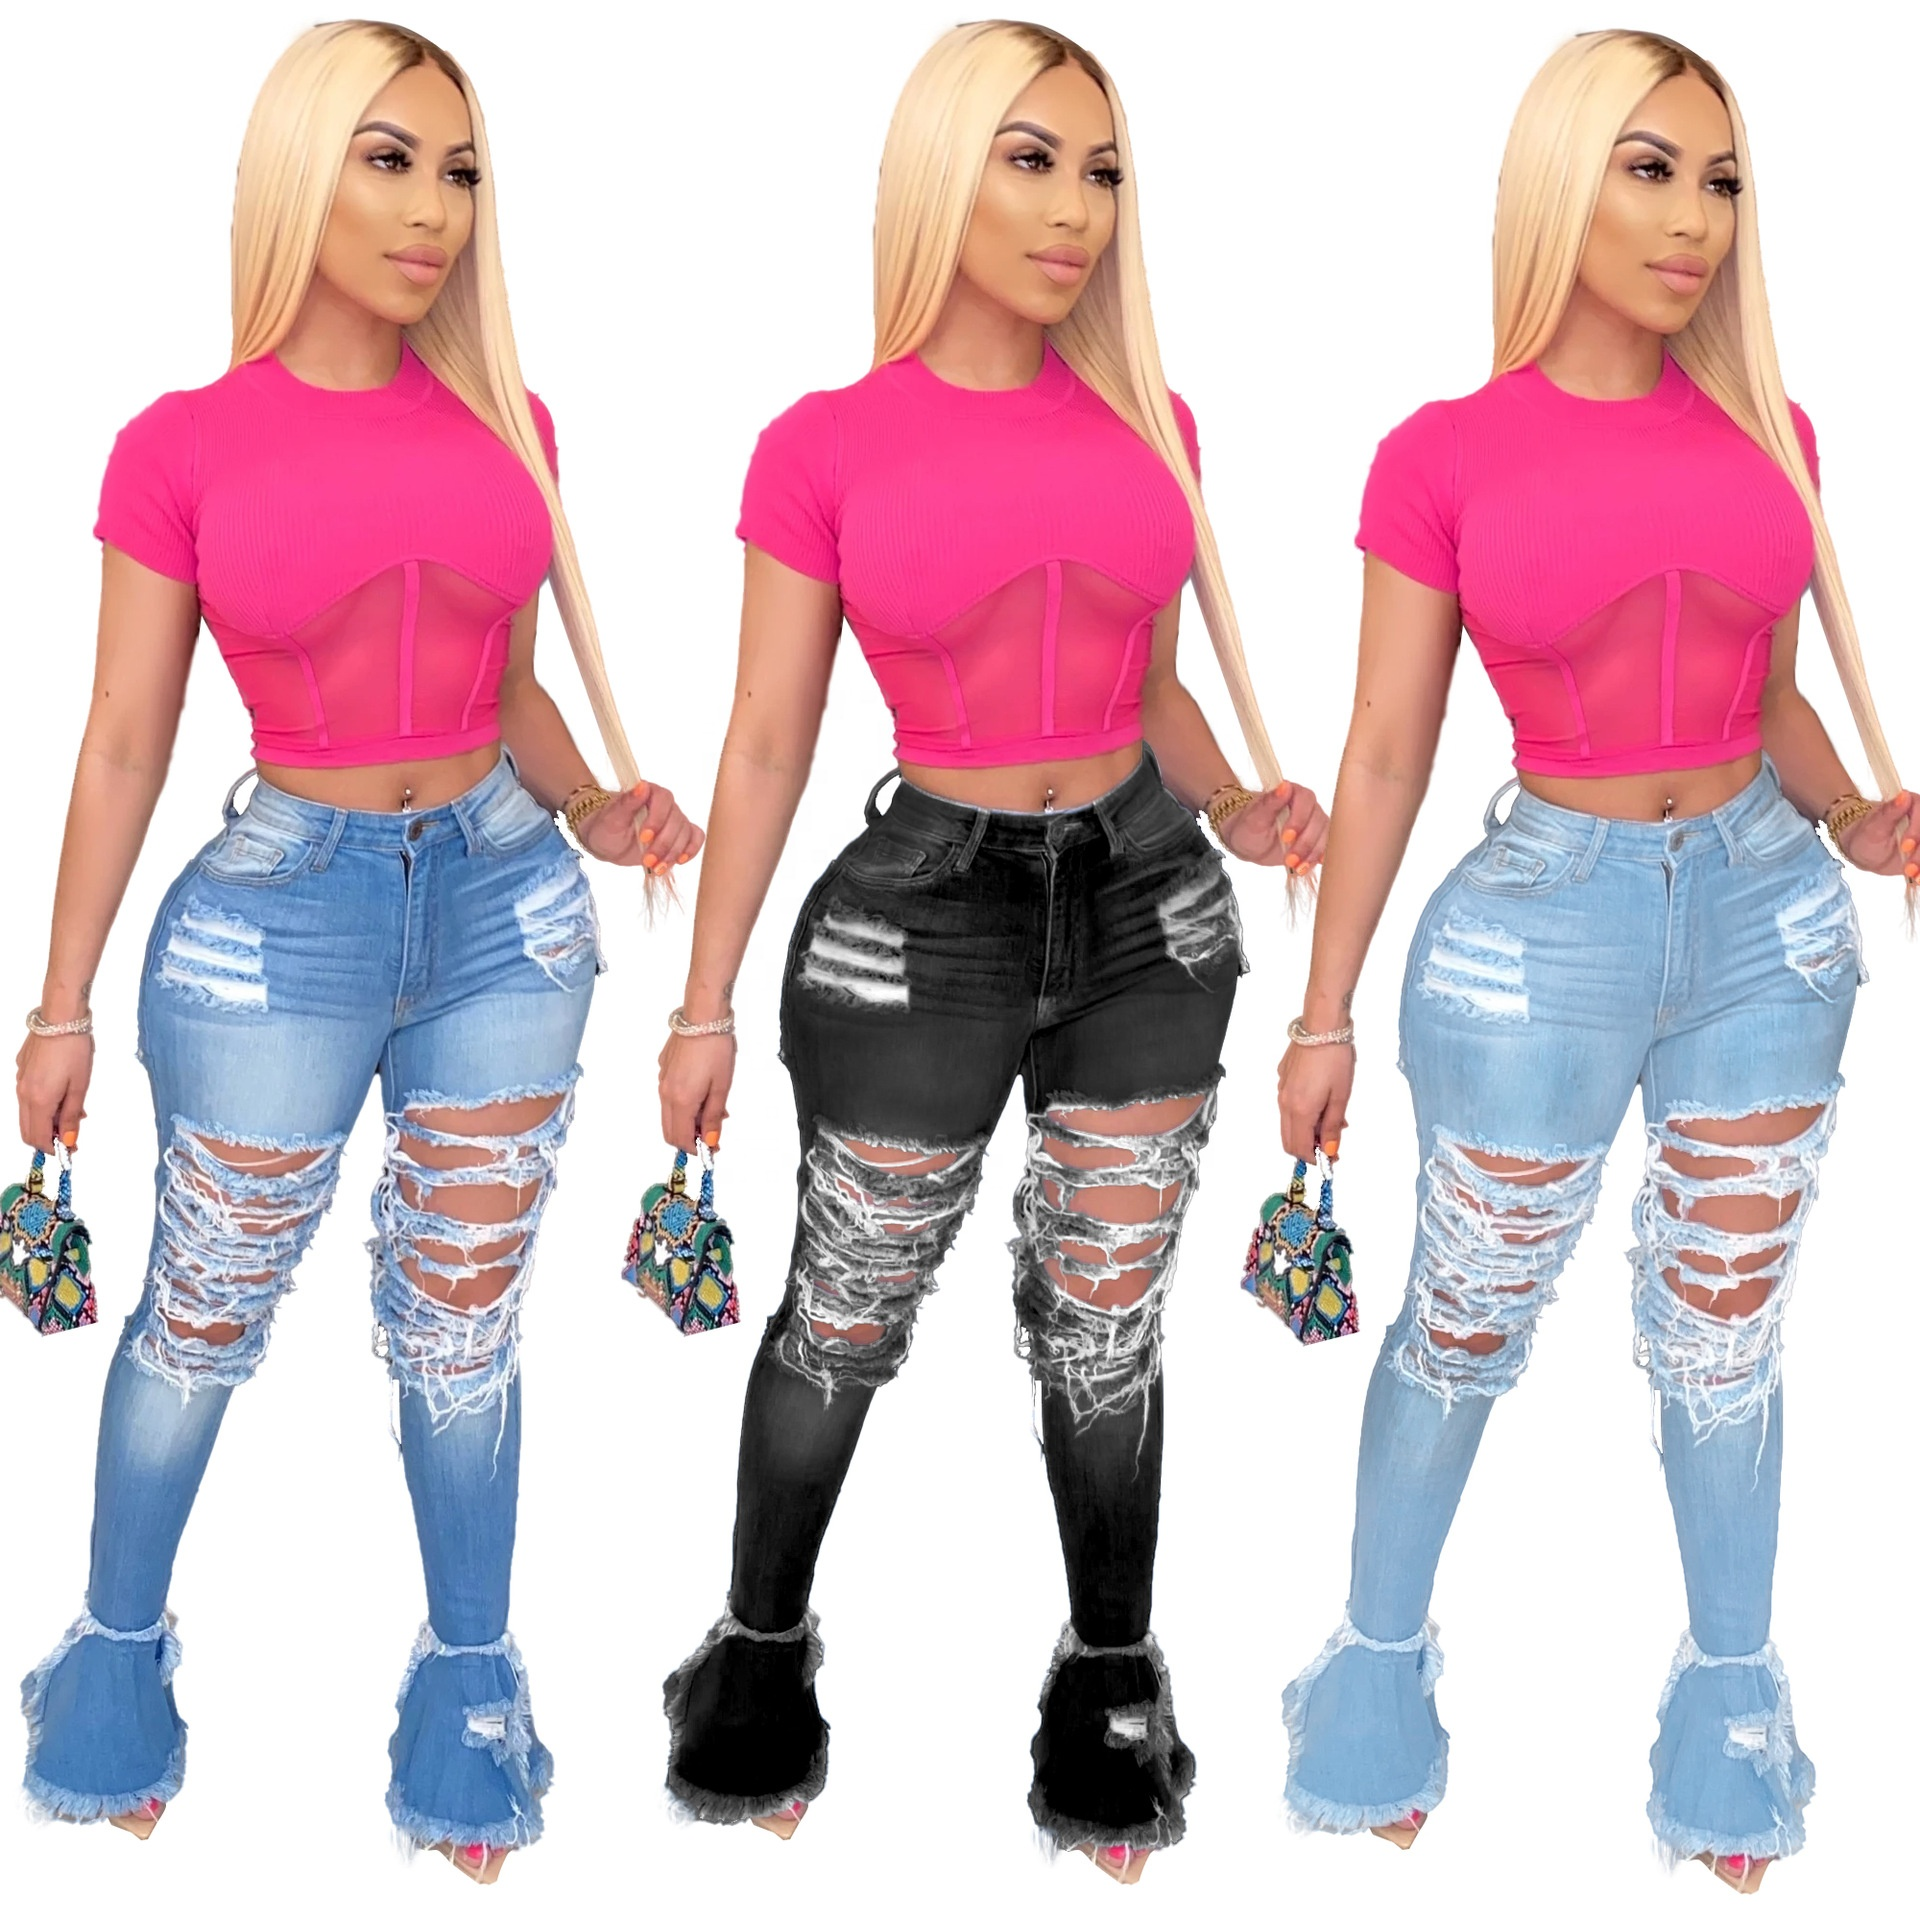 2020 New Design Wholesale Women Denim Stacked Jeans Casual Flare Jeans XXL Pants